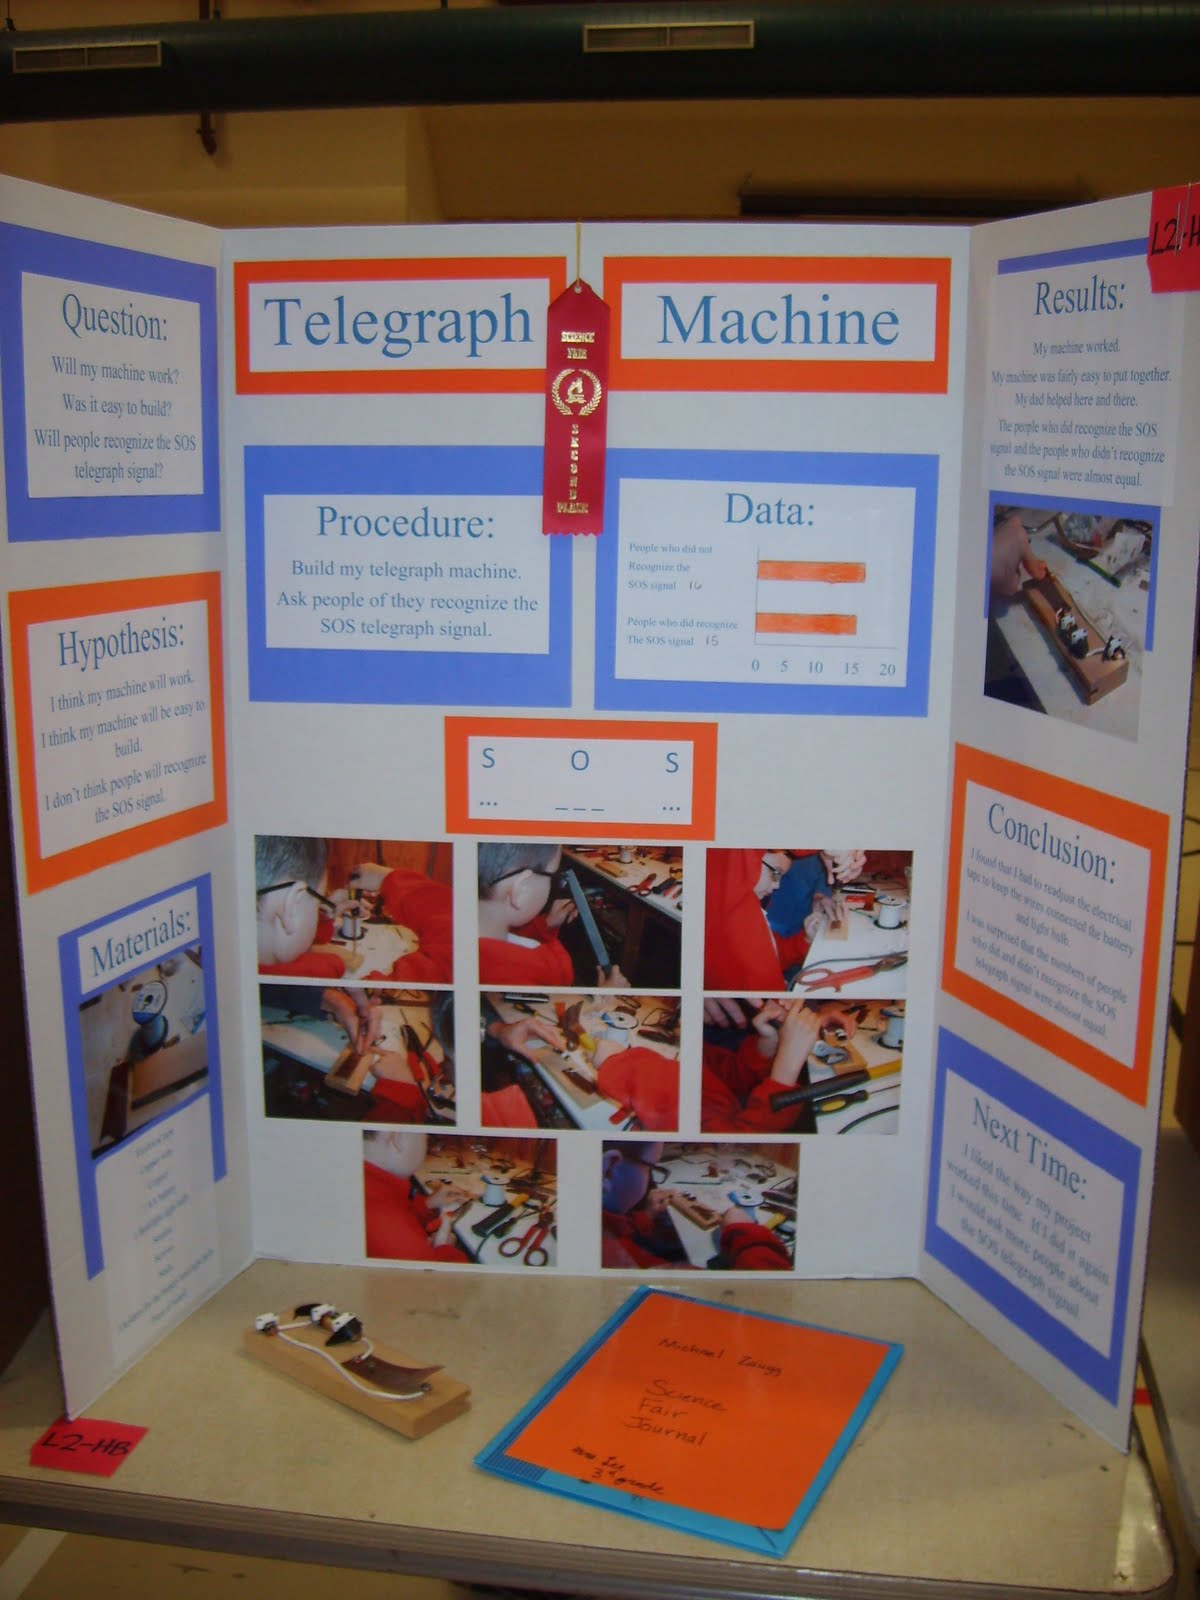 third grade science project Looking for 3rd grade science fair projects browse this fantastic collection of third grade science fair project ideas and cool 3rd grade science experiments.